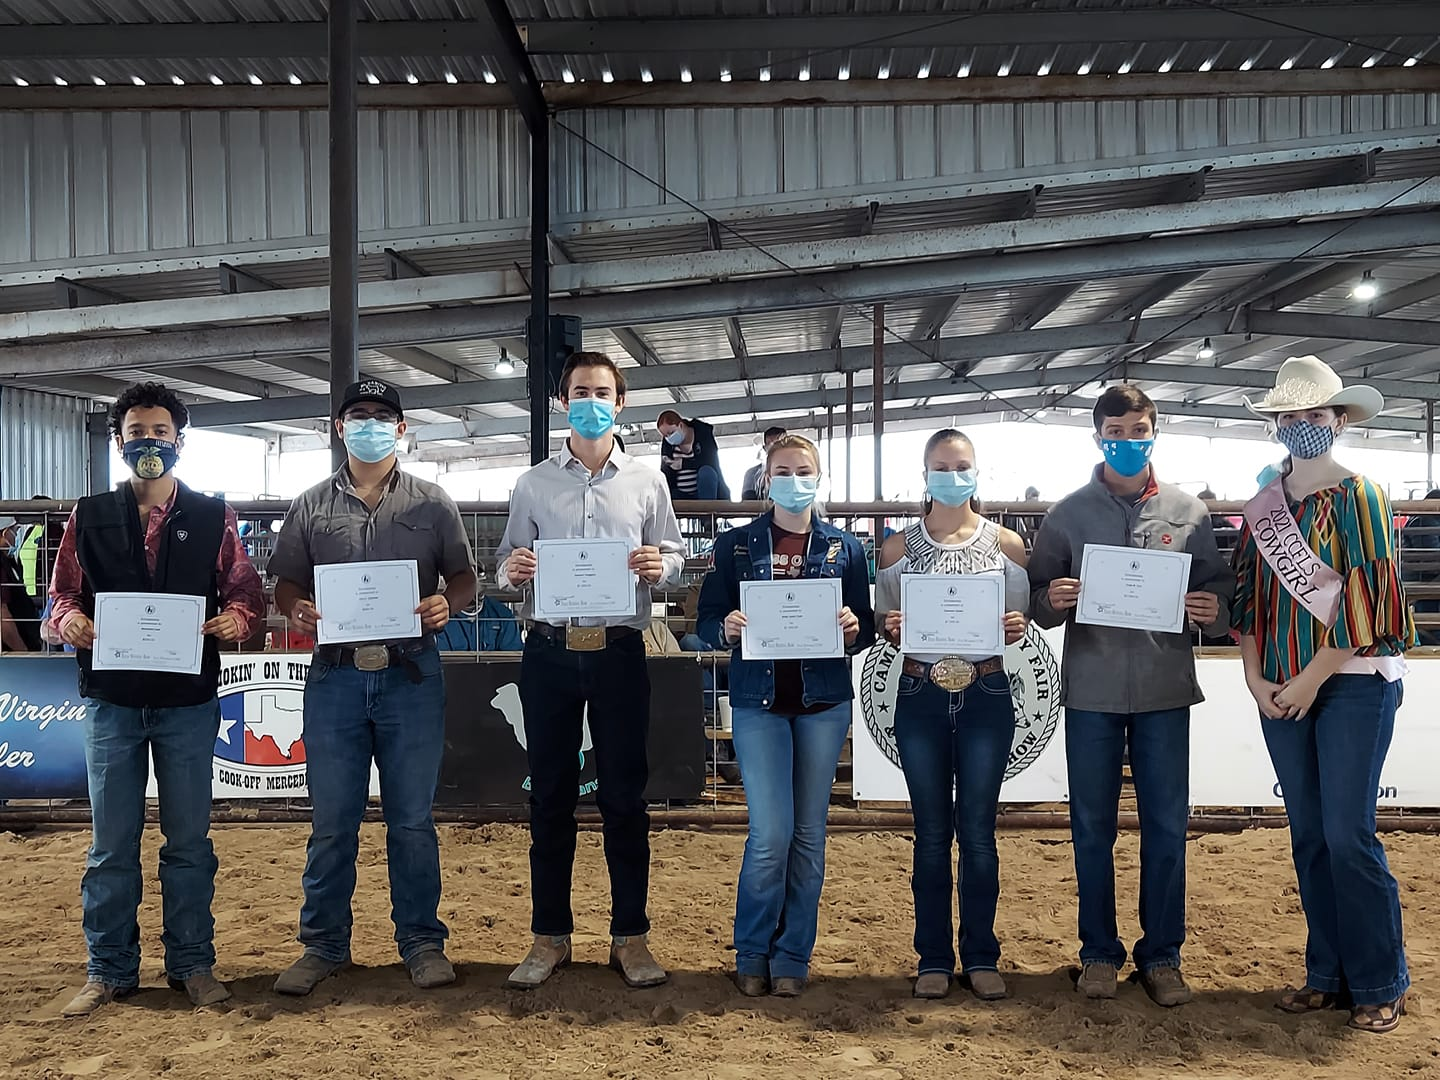 FFA members earn awards and scholarships at Cameron County Fair and Livestock Show